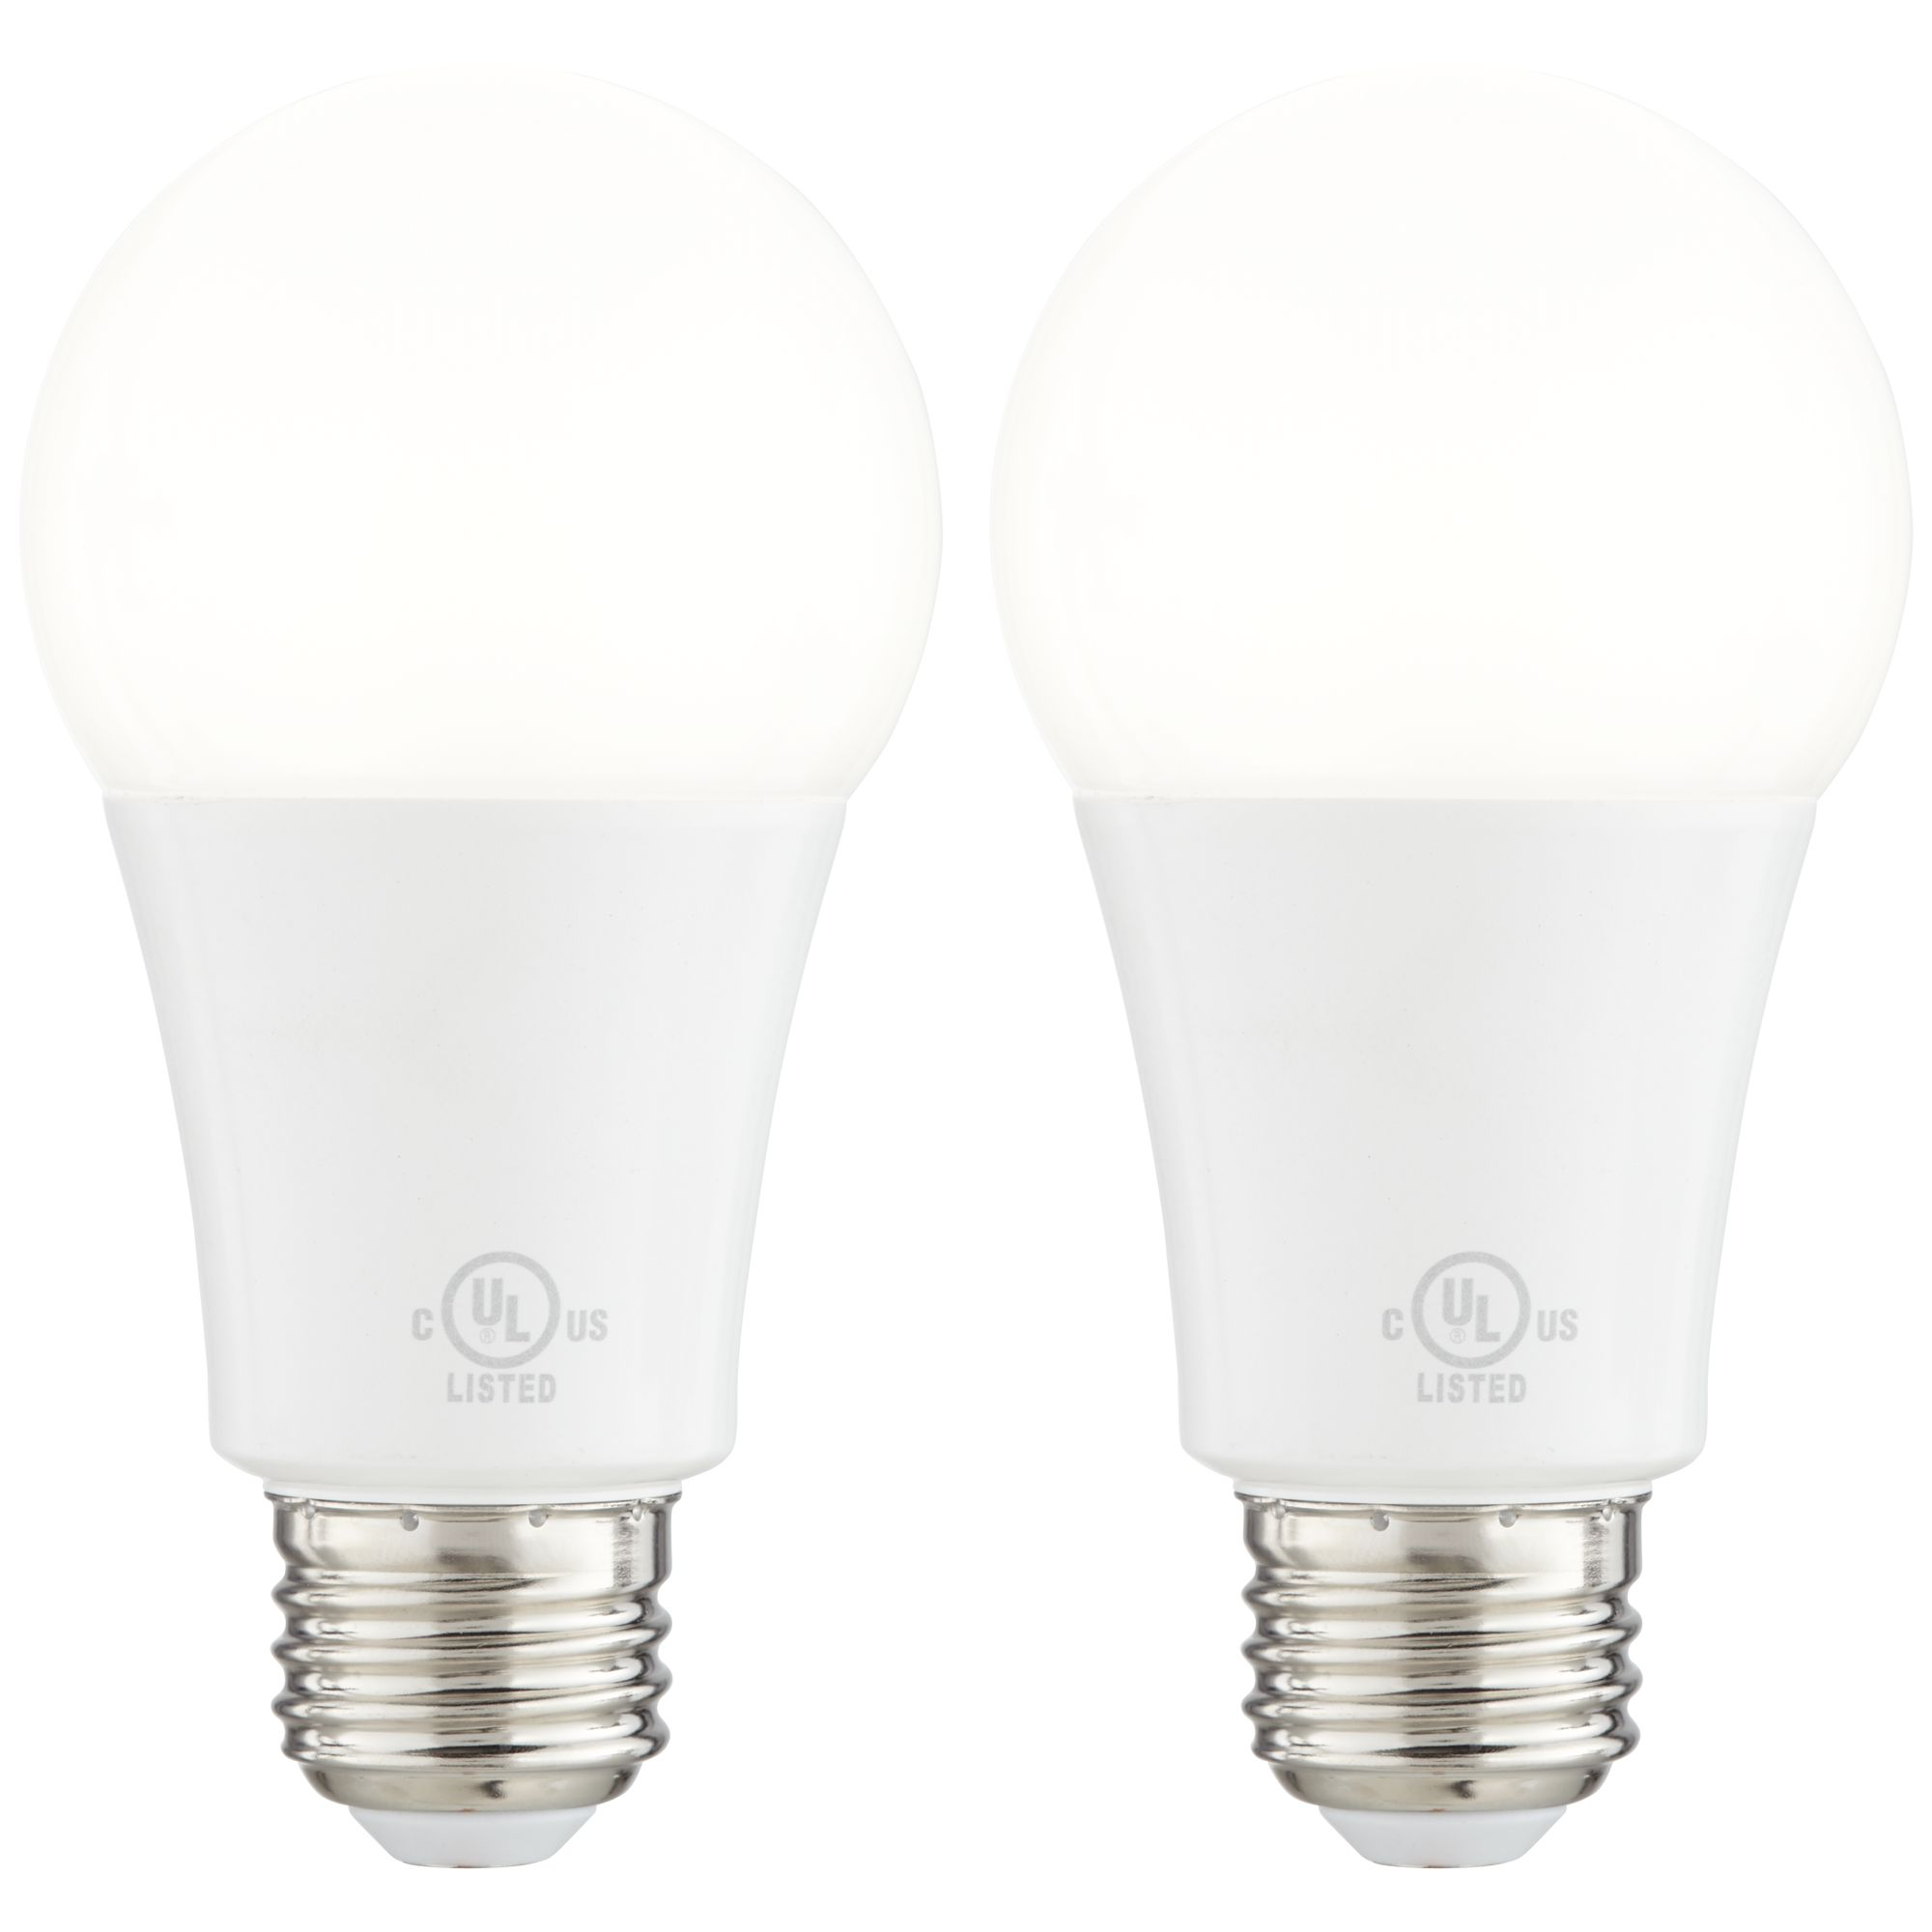 1y447?qlt=65&wid=274&hei=274&op_sharpen=1&resMode=sharp2&fmt=jpeg light bulbs led, cfl, incandescent and more lamps plus